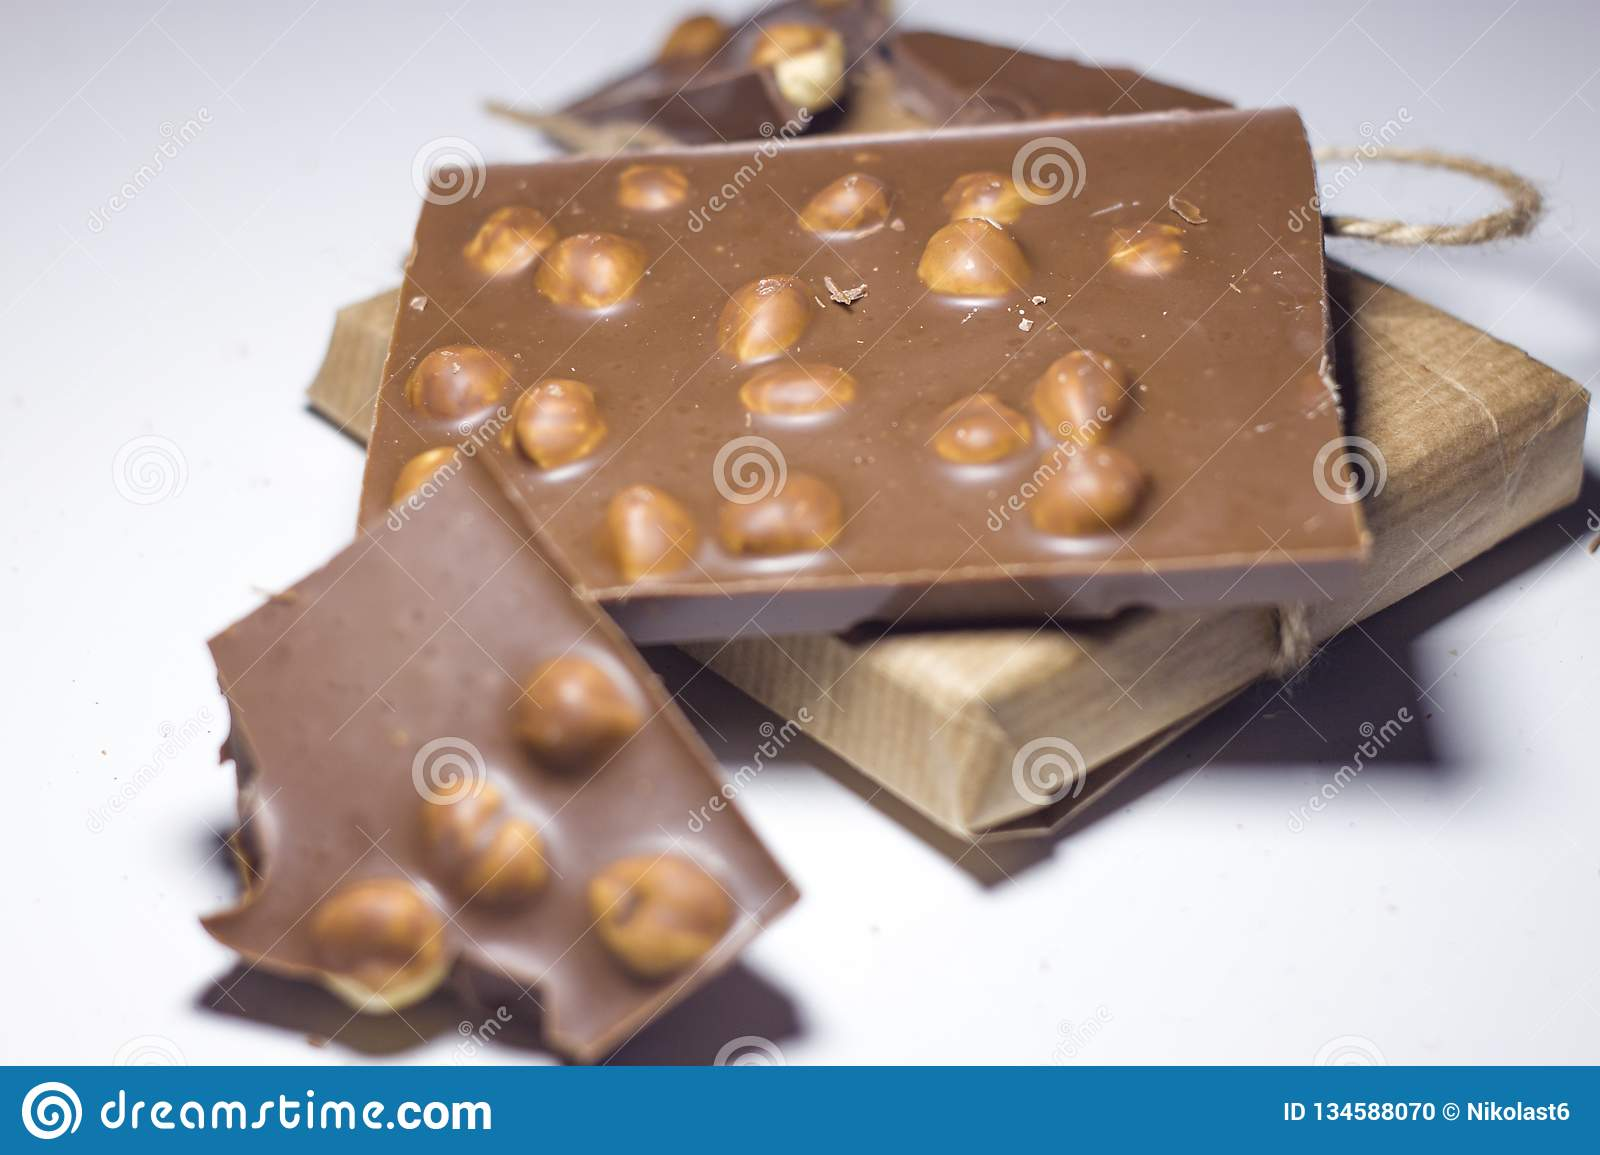 Closeup of sweets, chocolate with nuts on a white background.